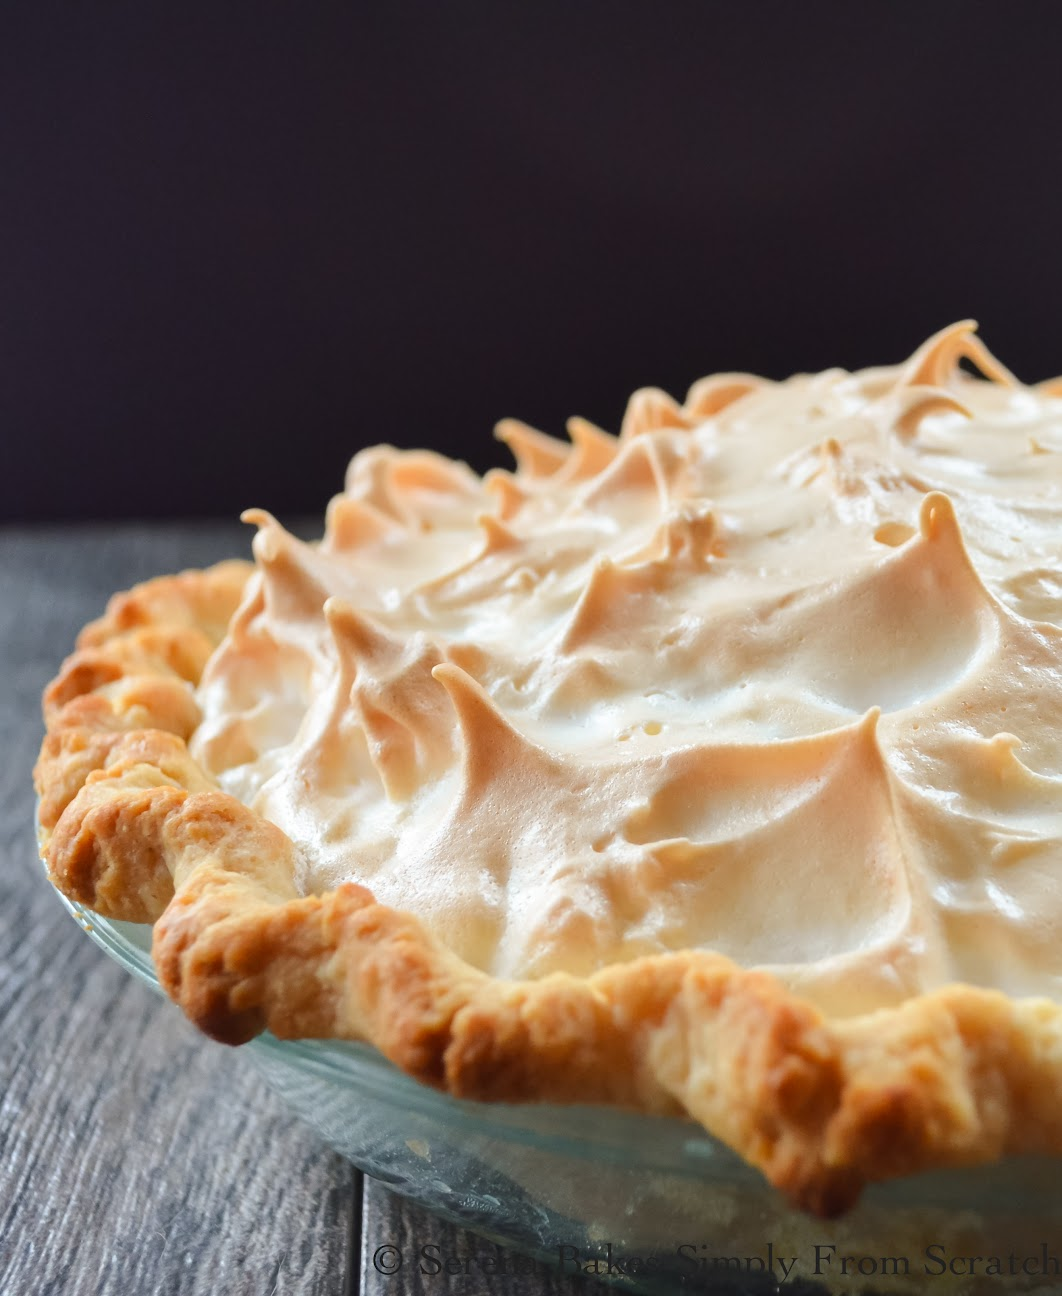 A weep free Lemon Meringue Pie with easy to follow step by step instructions by Serena Bakes Simply From Scratch.